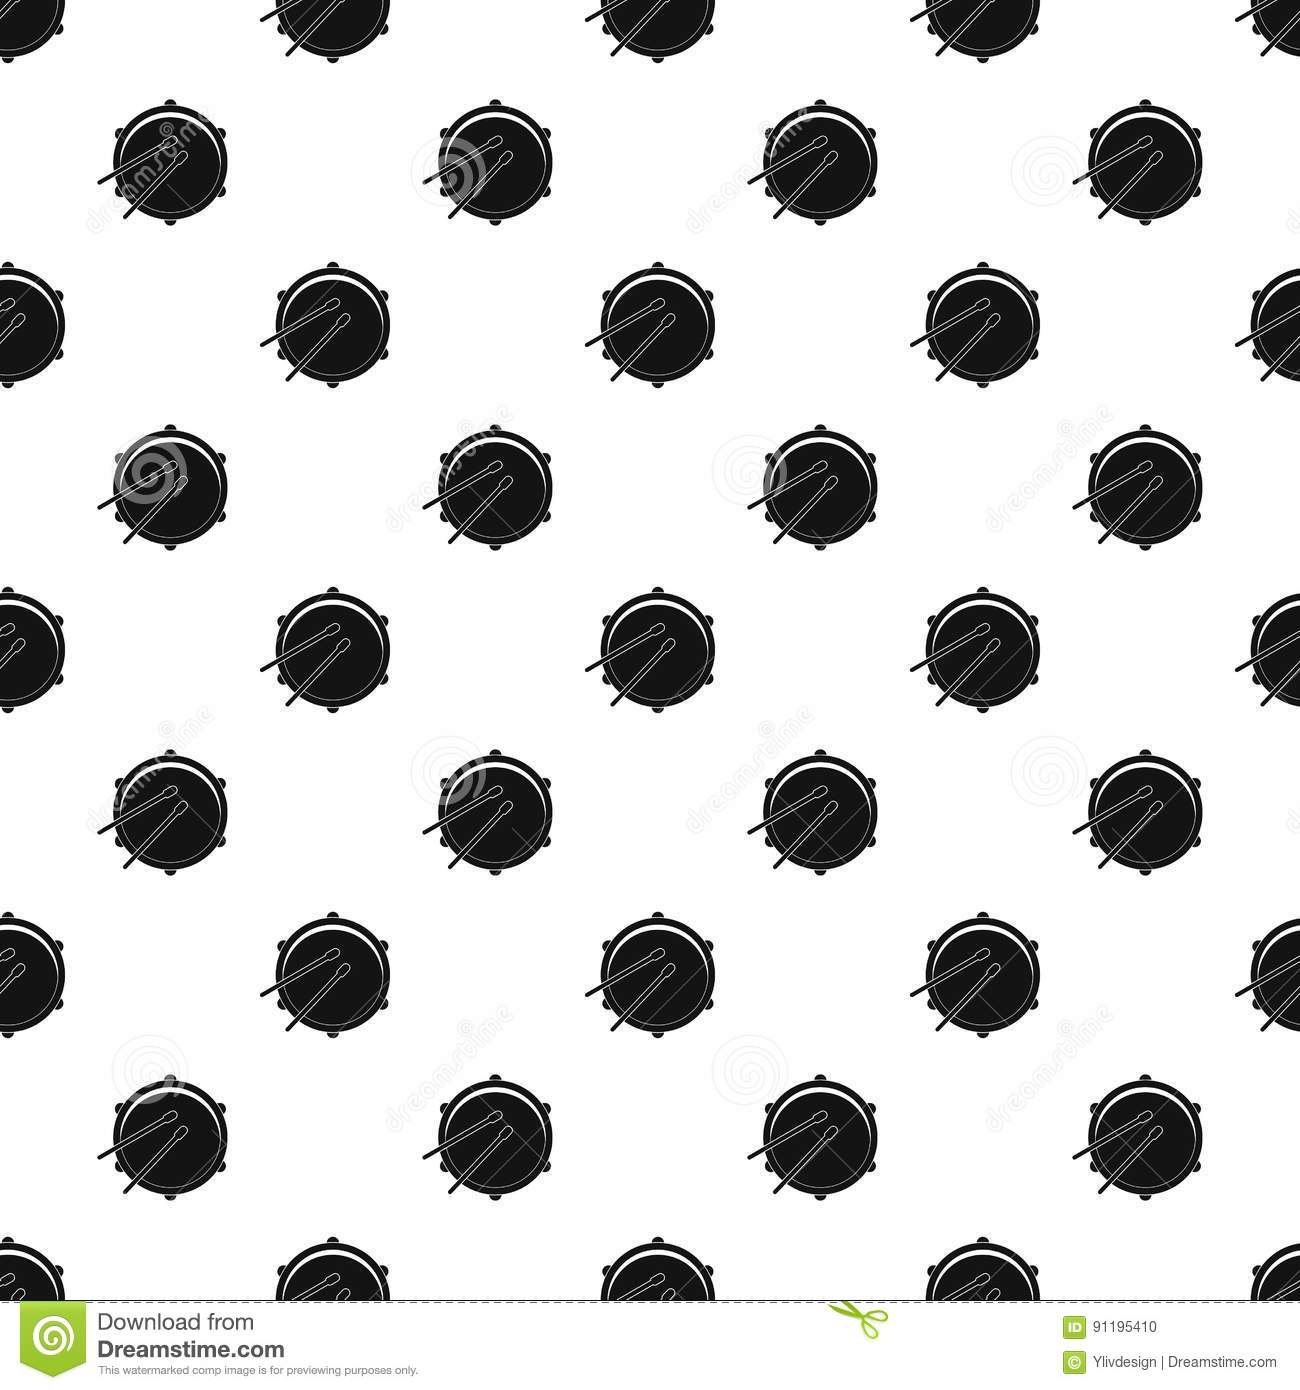 Drum pattern vector stock vector. Image of black, classic